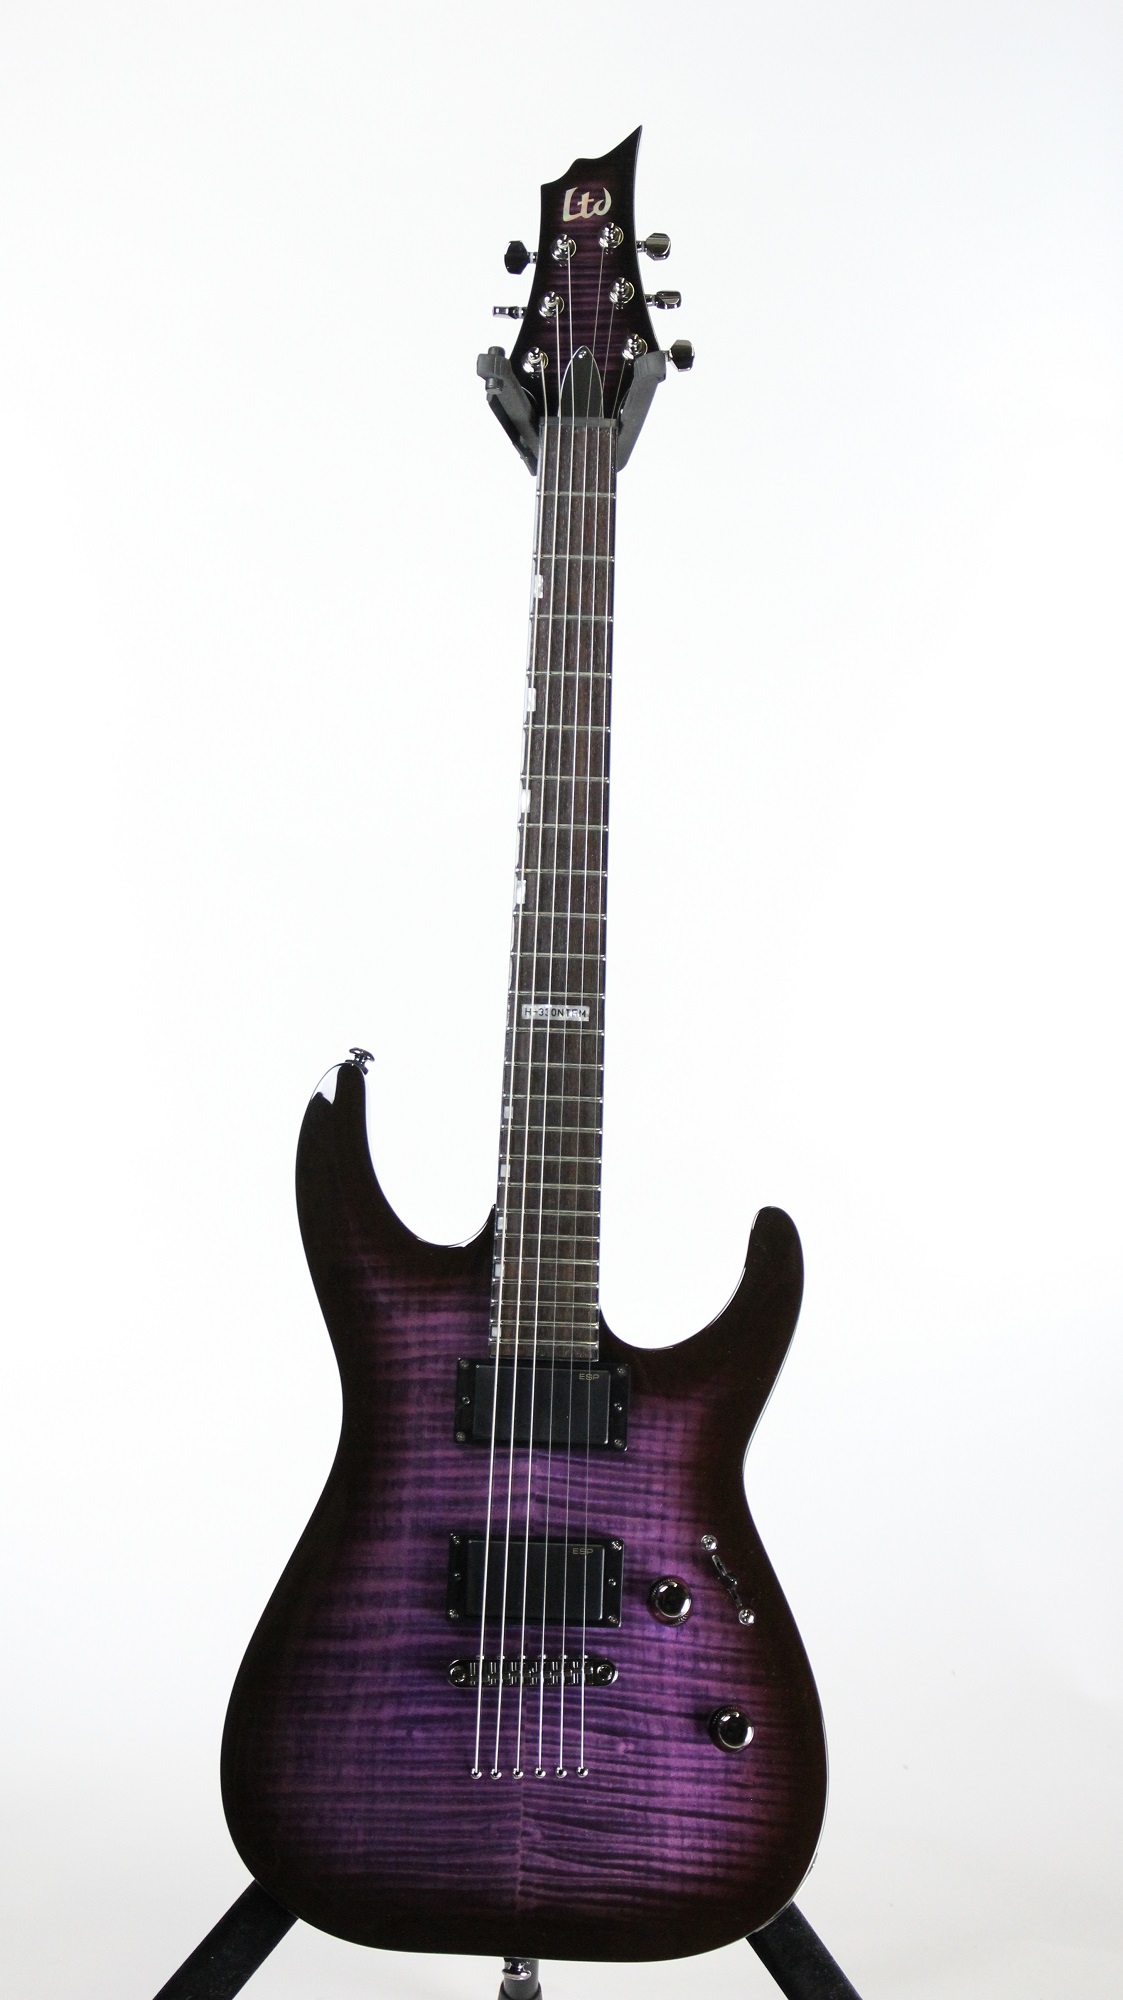 esp ltd h 330fm nt see thru purple sunburst sample prototype electric guitar 6. Black Bedroom Furniture Sets. Home Design Ideas